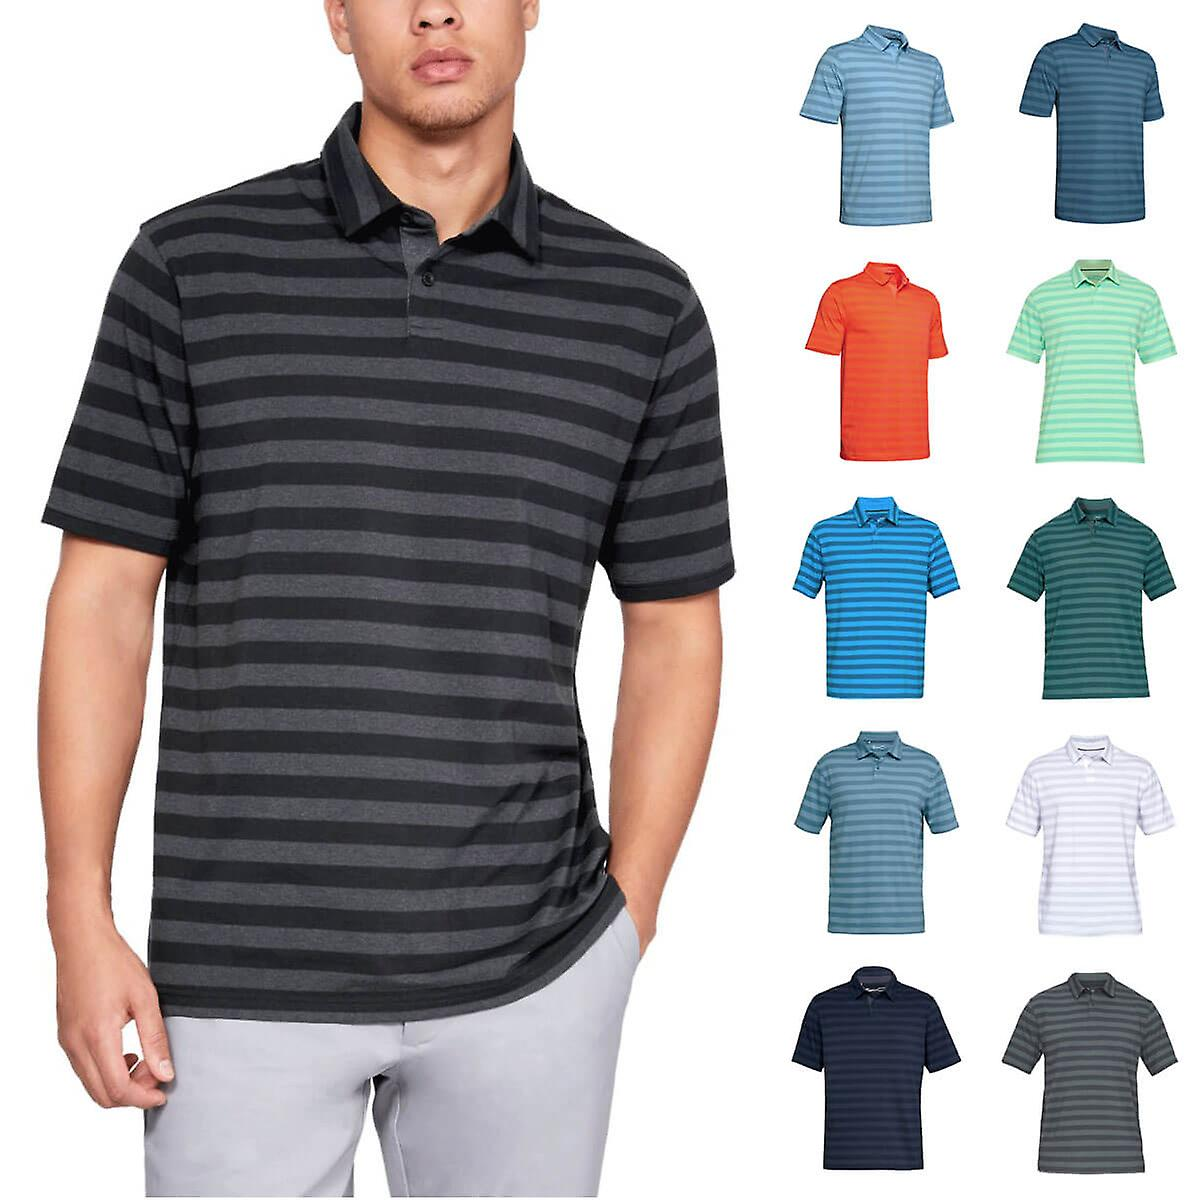 Under Armour CC Scramble Stripe Camisa Polo Hombre